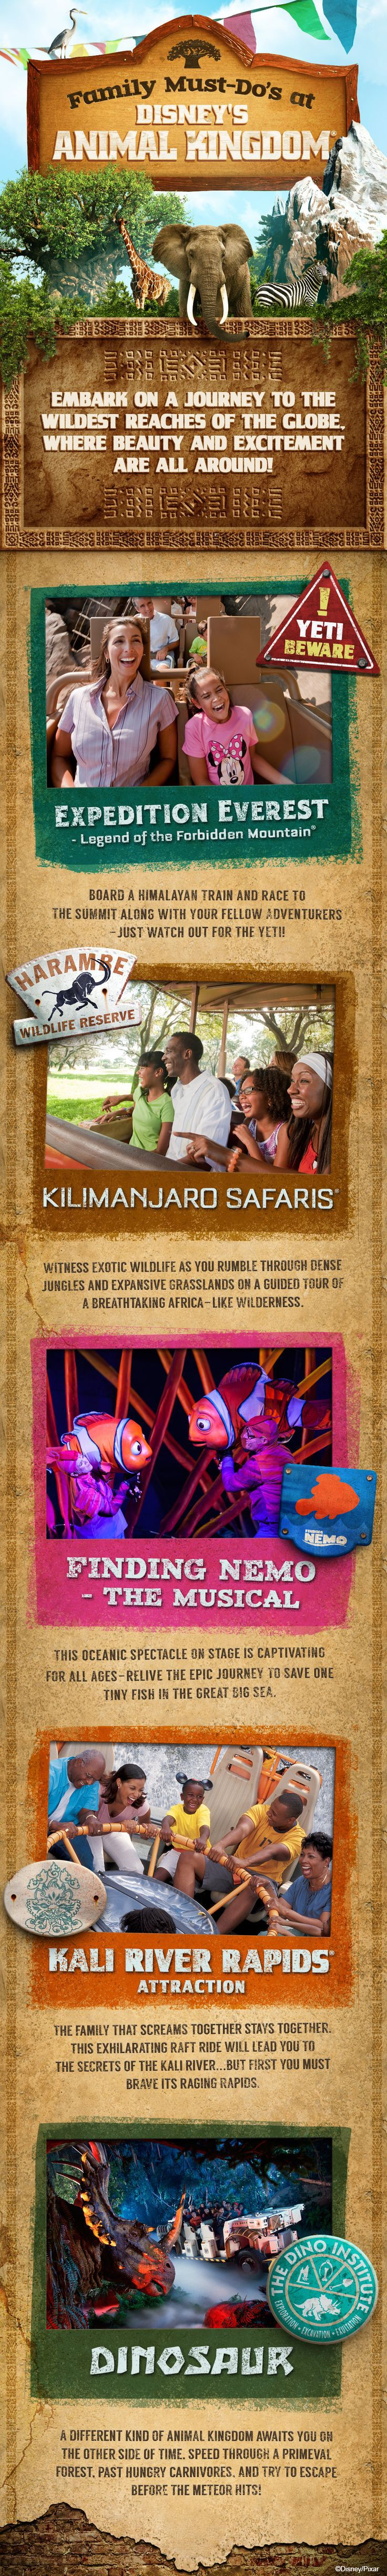 Start your expedition at the Walt Disney World Resort's wildest theme park with these Family Must Do's at Disney's Animal Ki